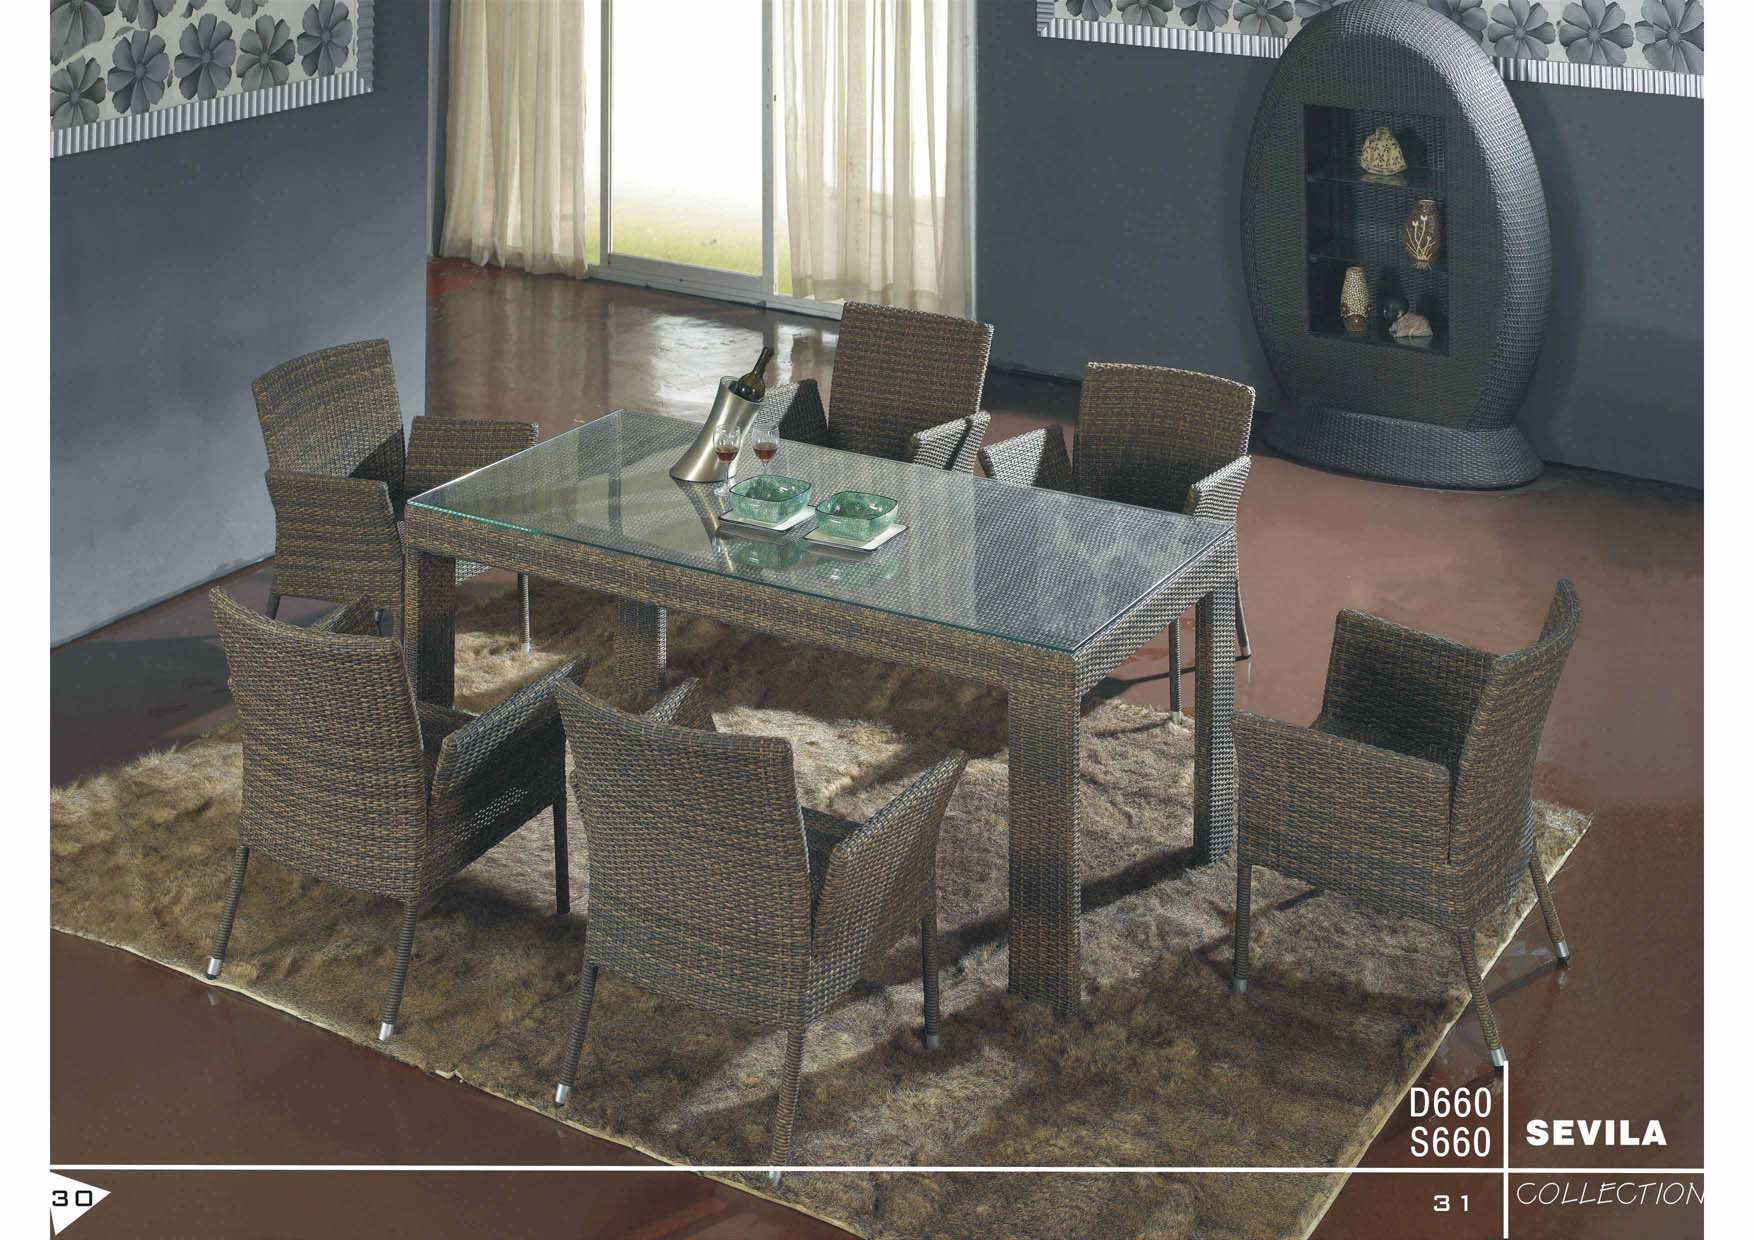 Rattan Wicker Dining Table Set Dongguan Toyard Furniture Co Ltd Outdoor Rattan Furniture For Hospitality